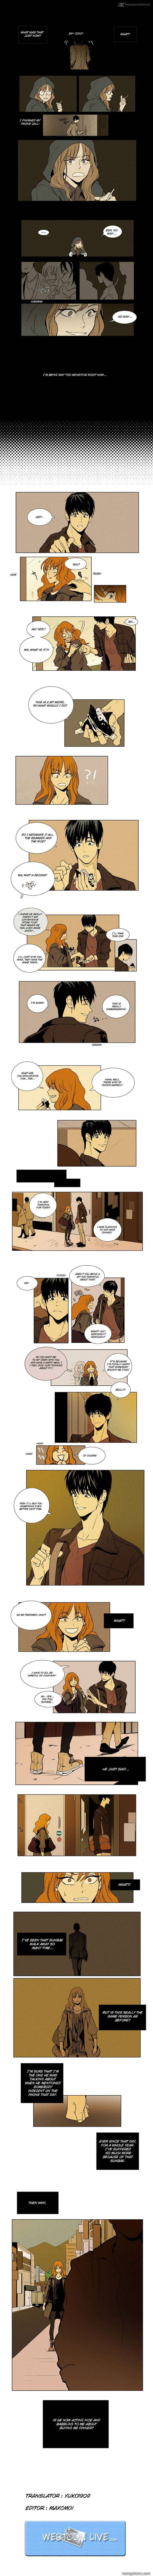 Cheese In The Trap 4 Page 2